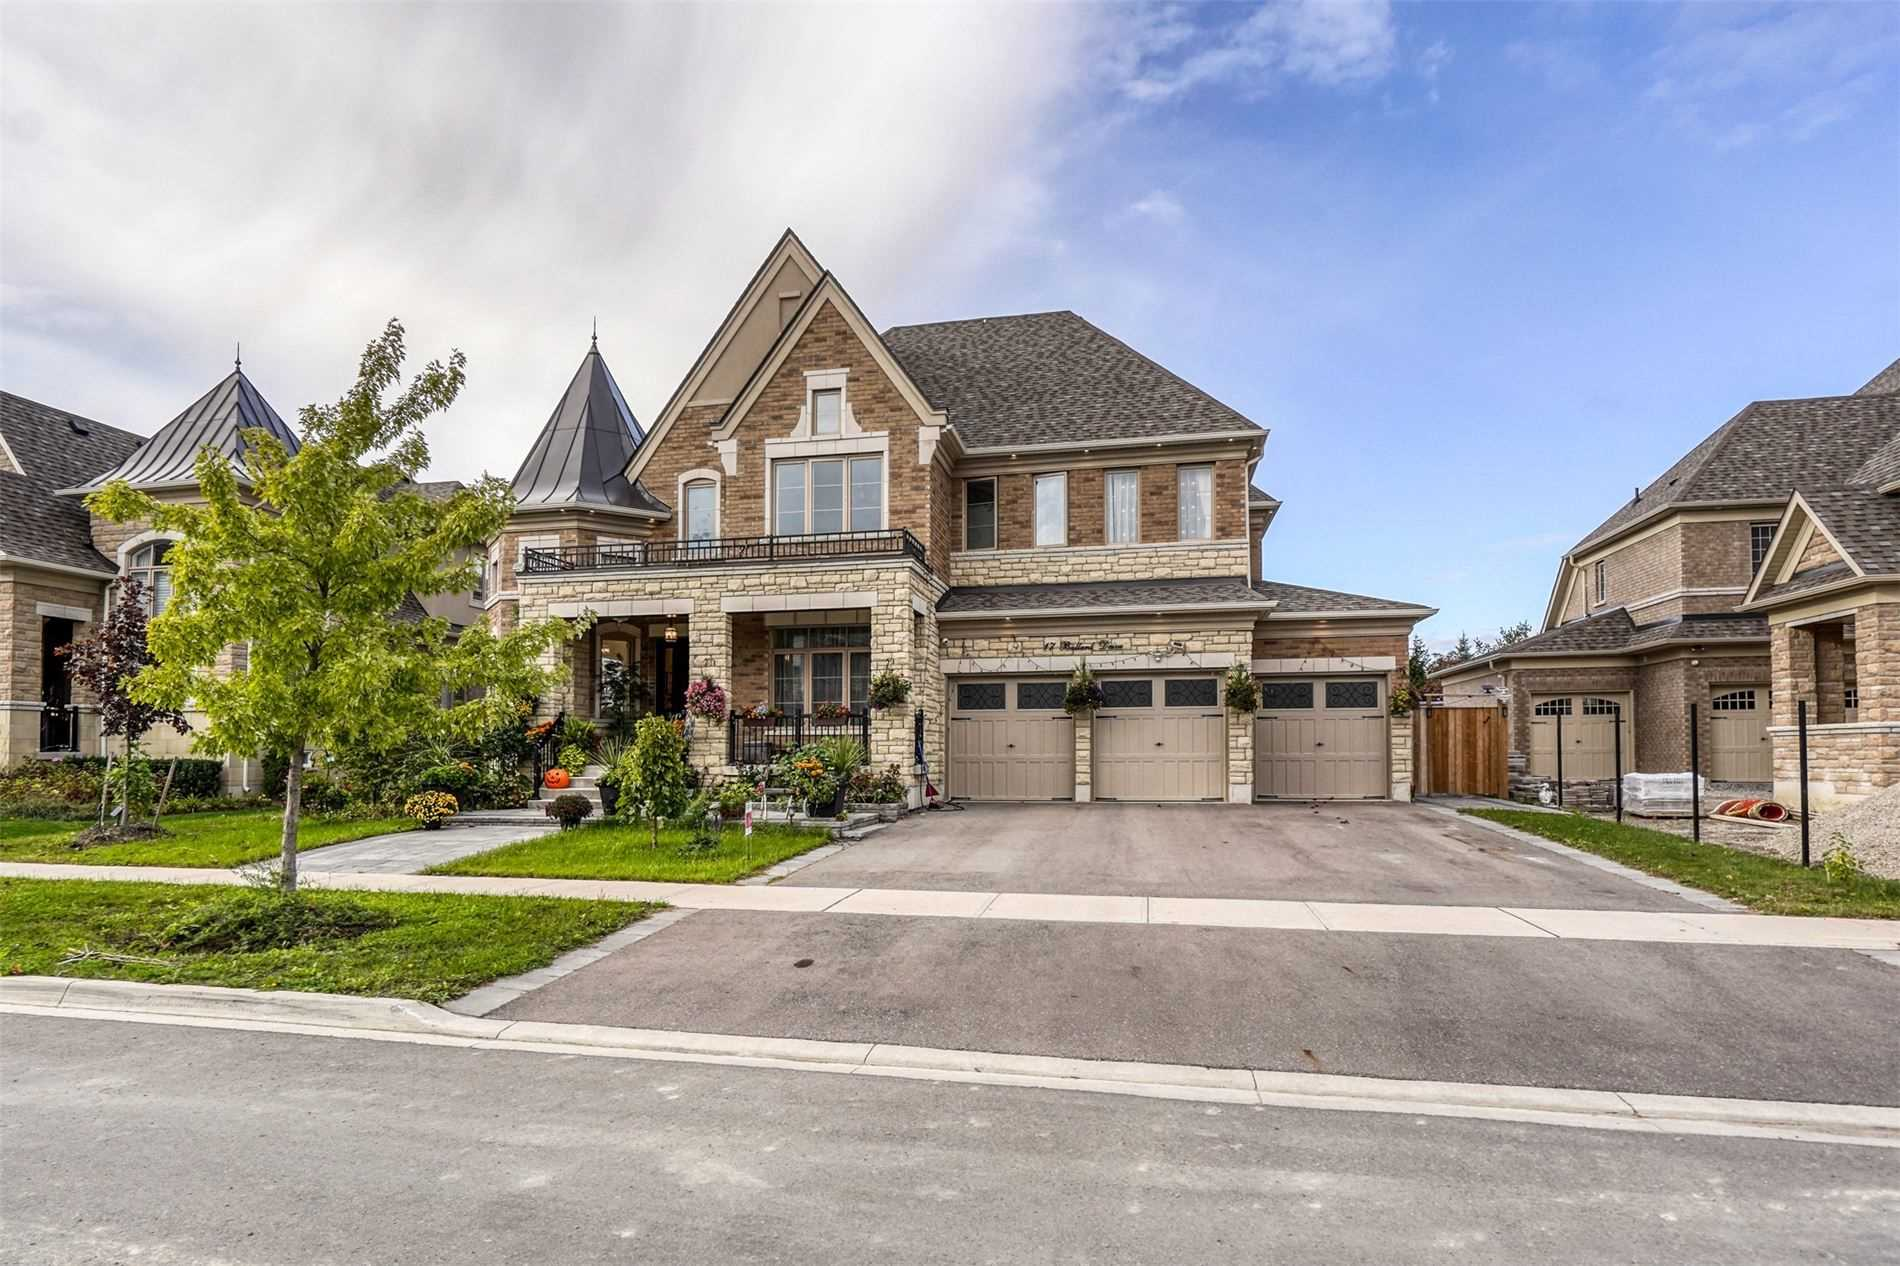 Detached house For Sale In King